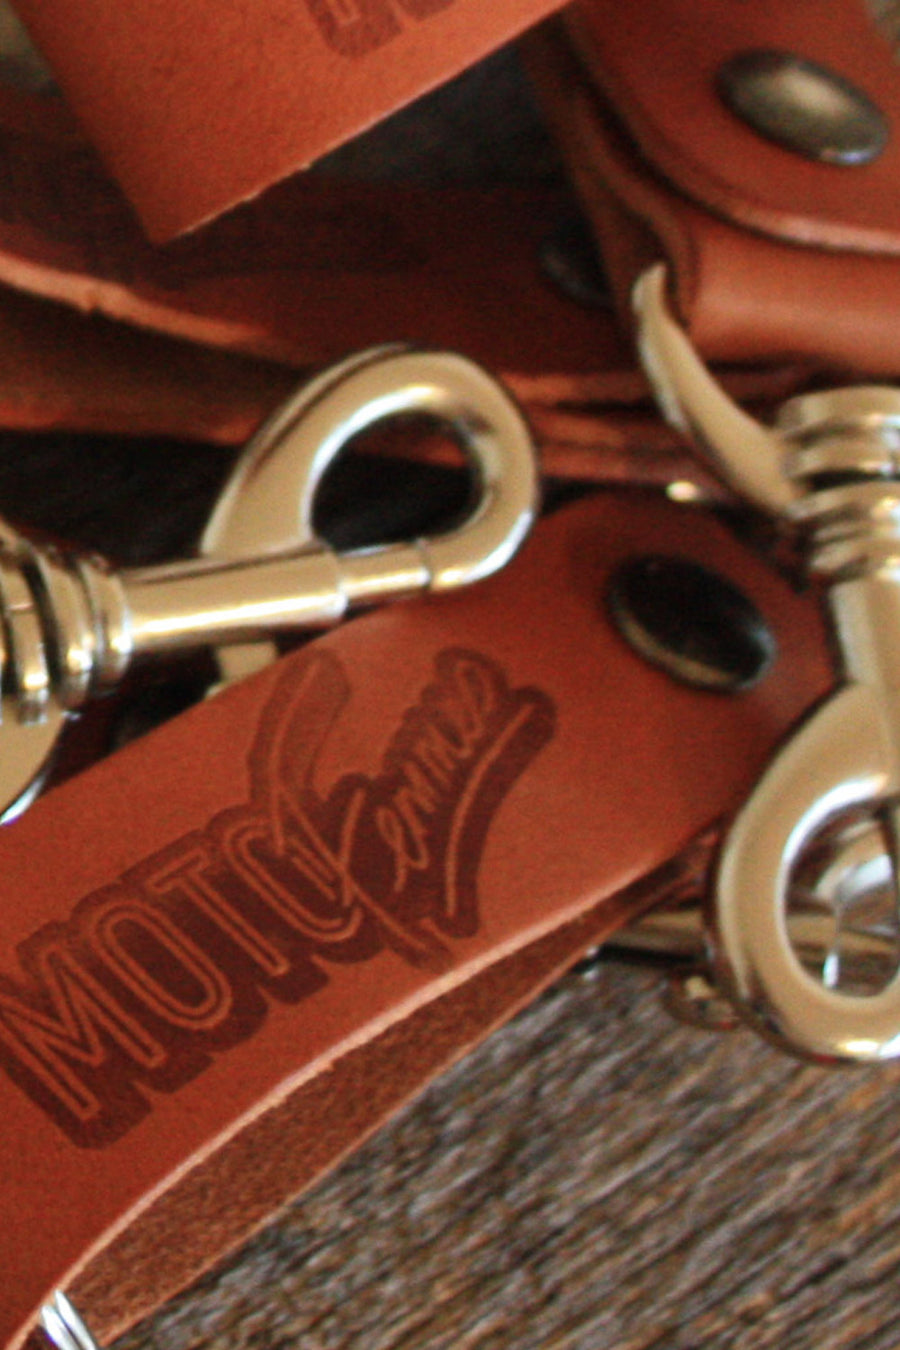 Moto Femmes Logo Leather Key Fob